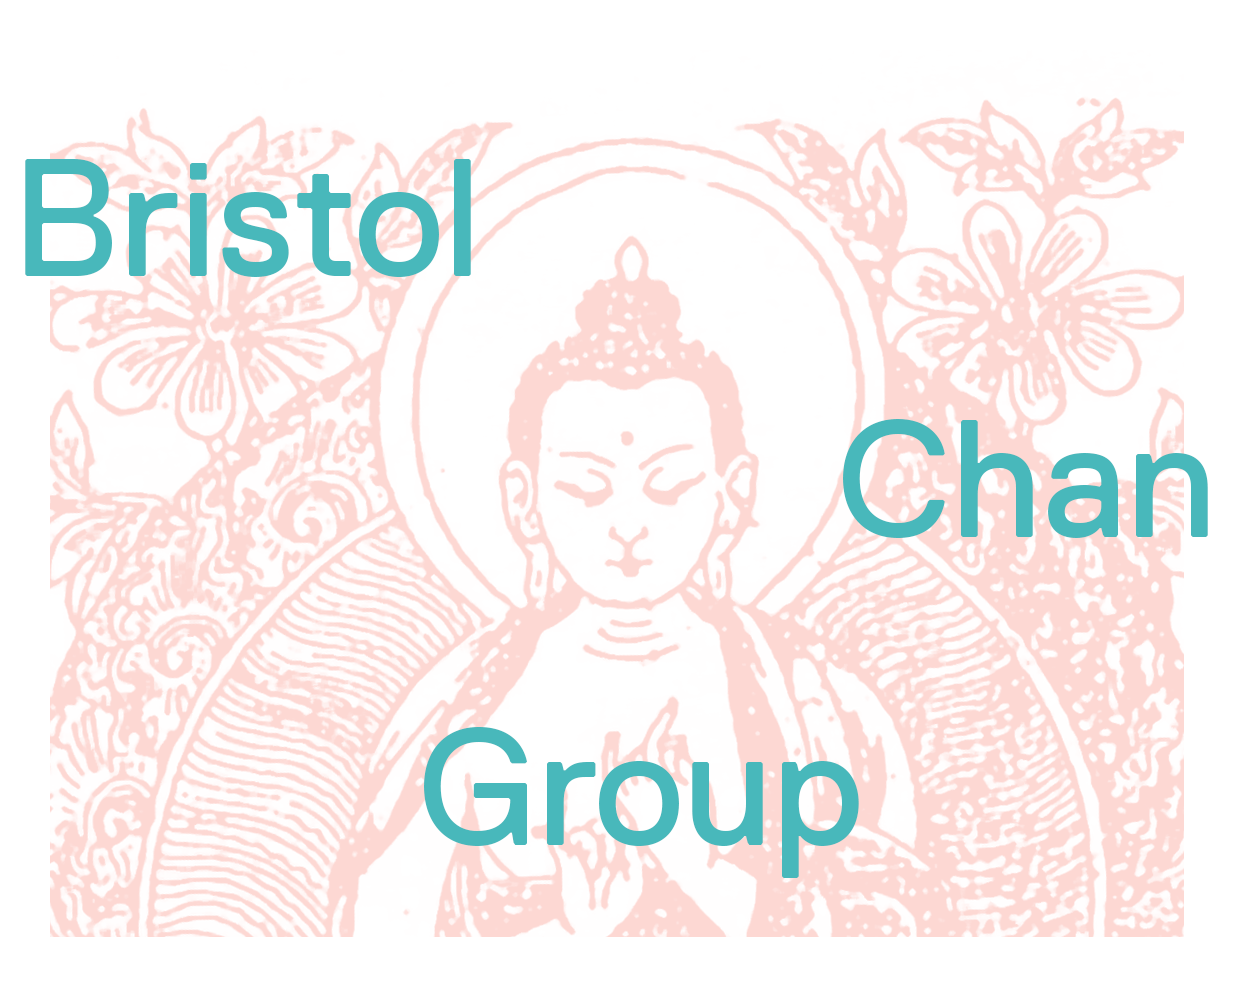 Bristol Chan Group